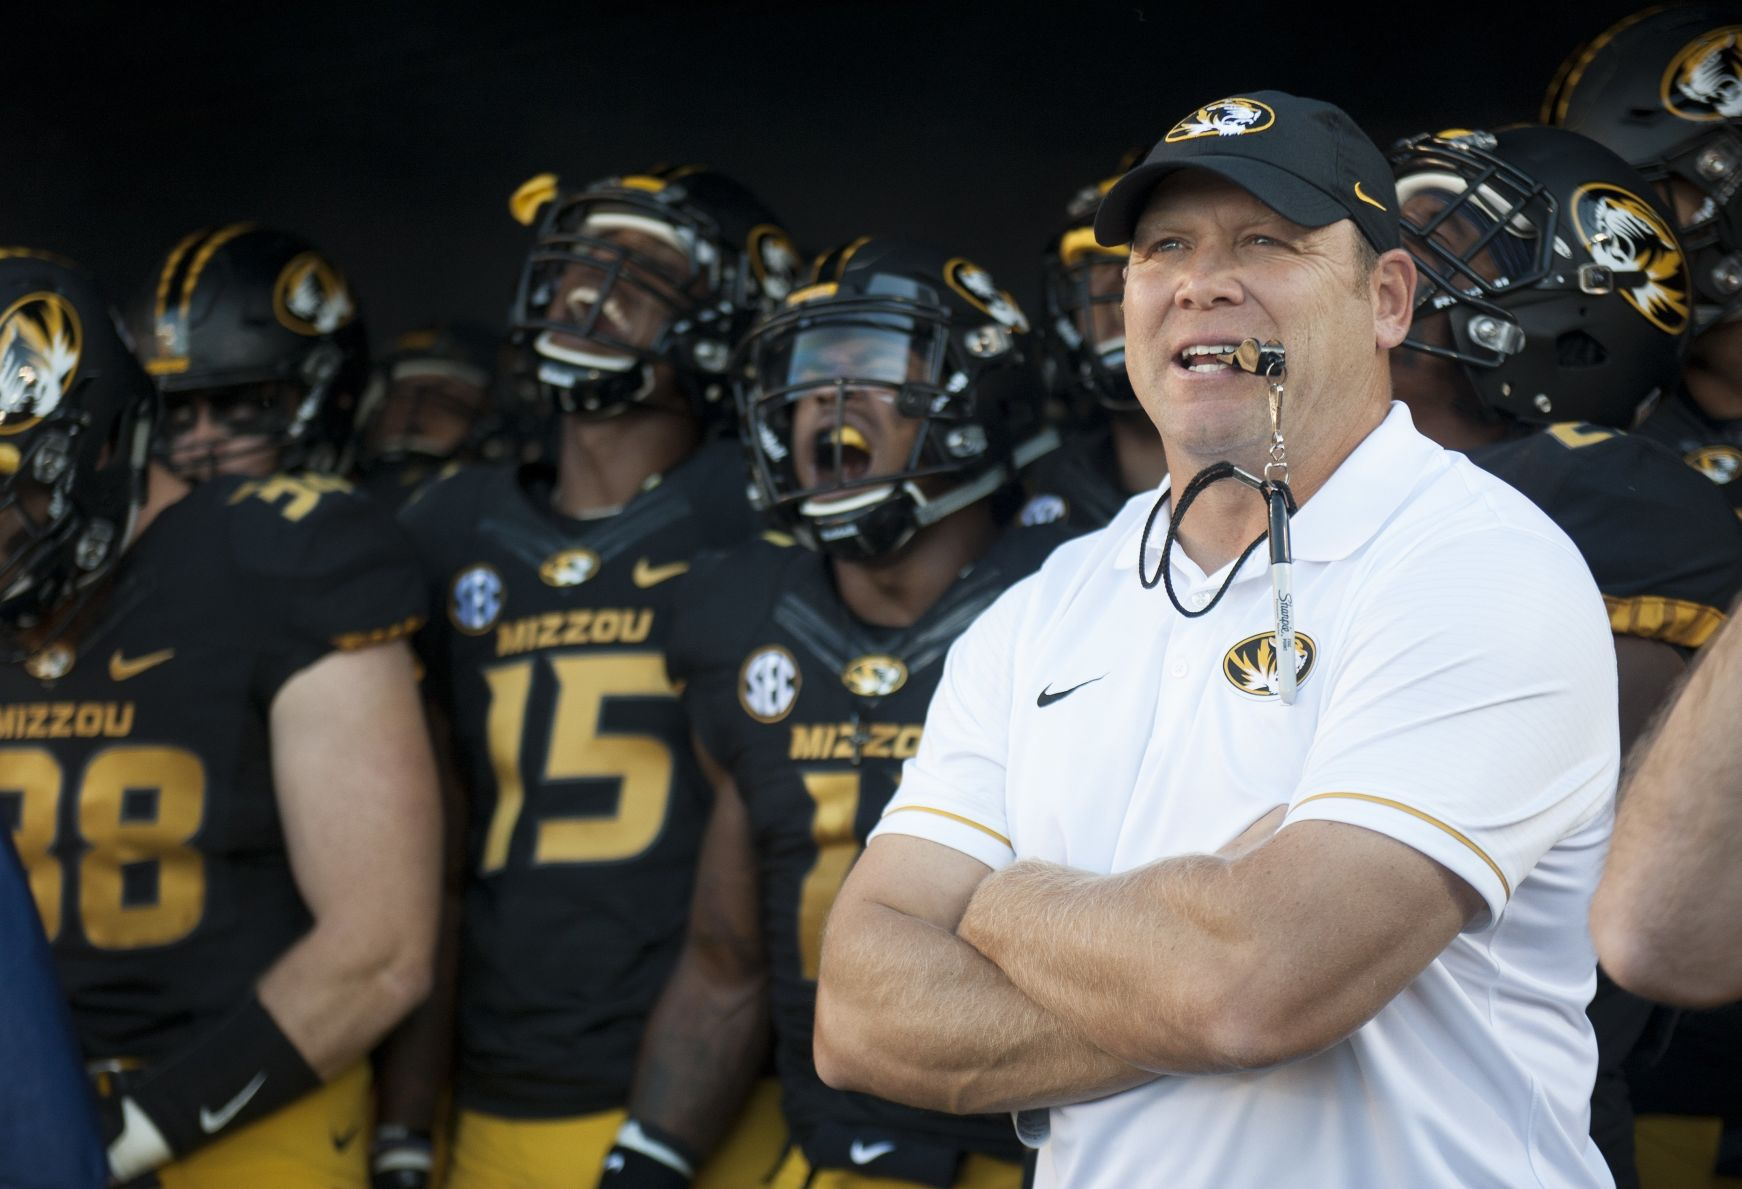 Mizzou football defensive end Nate Howard dismissed from team